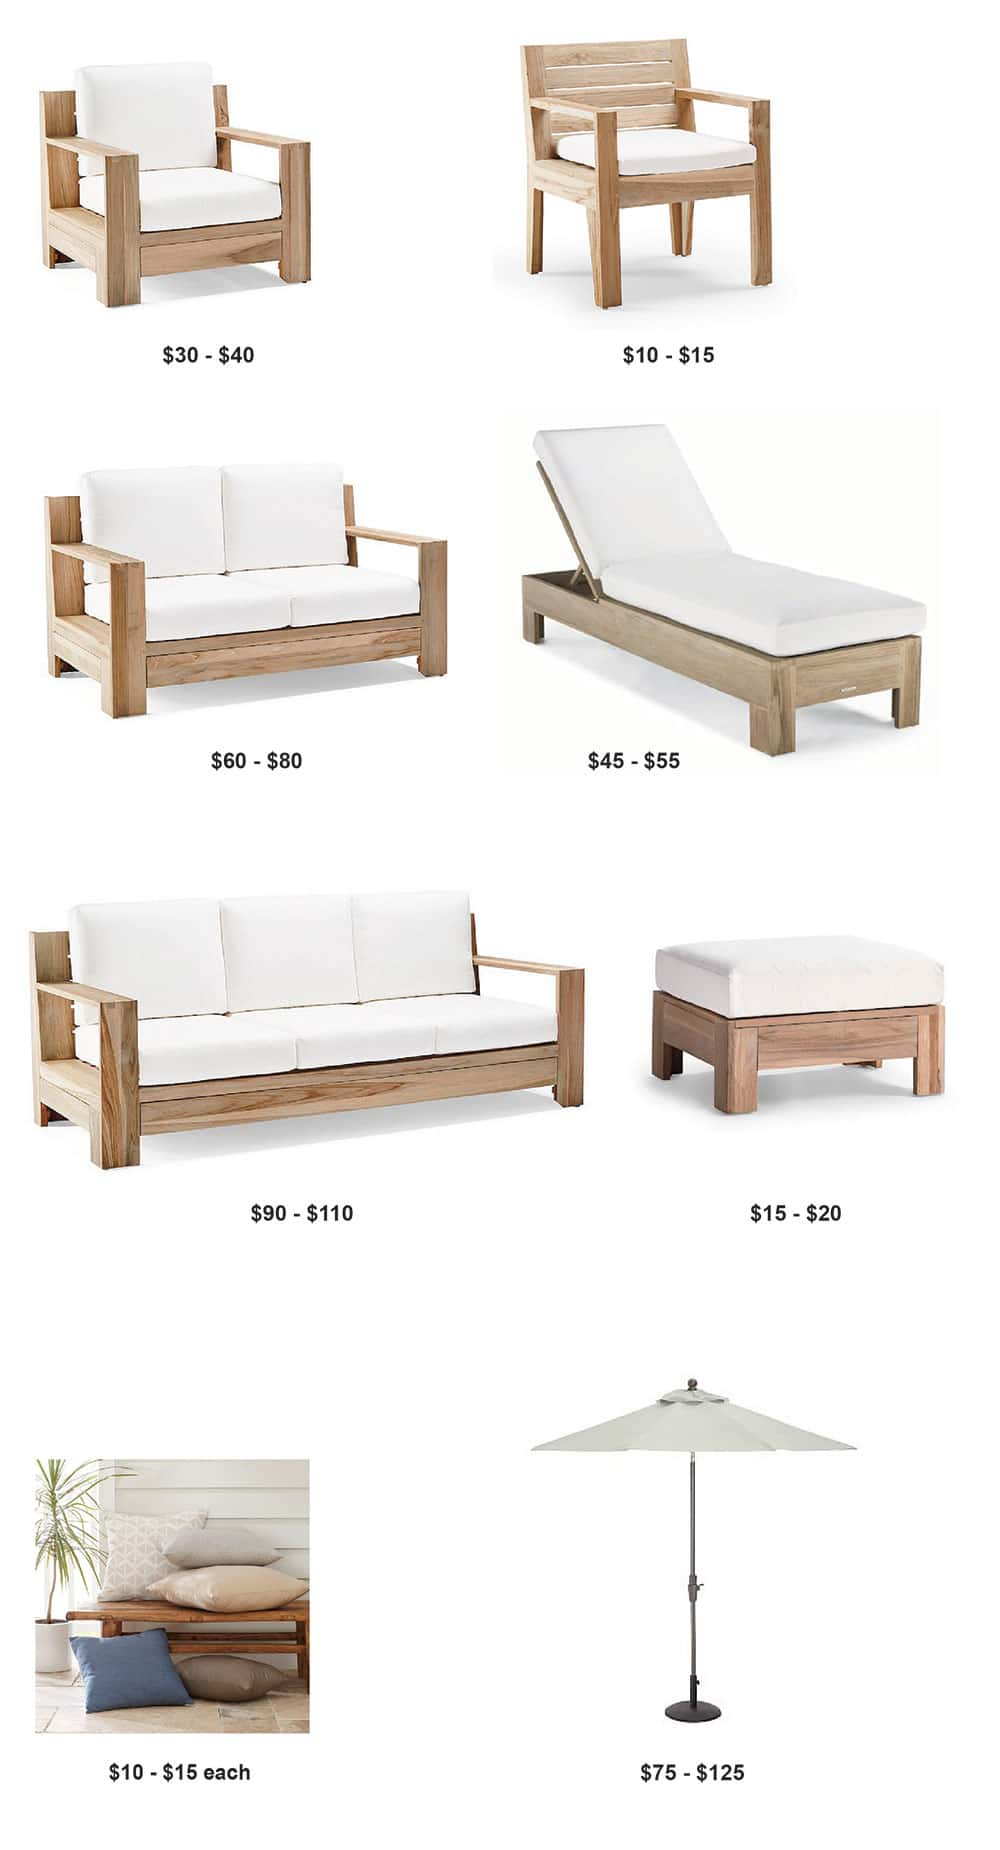 Outdoor Upholstery Pricing